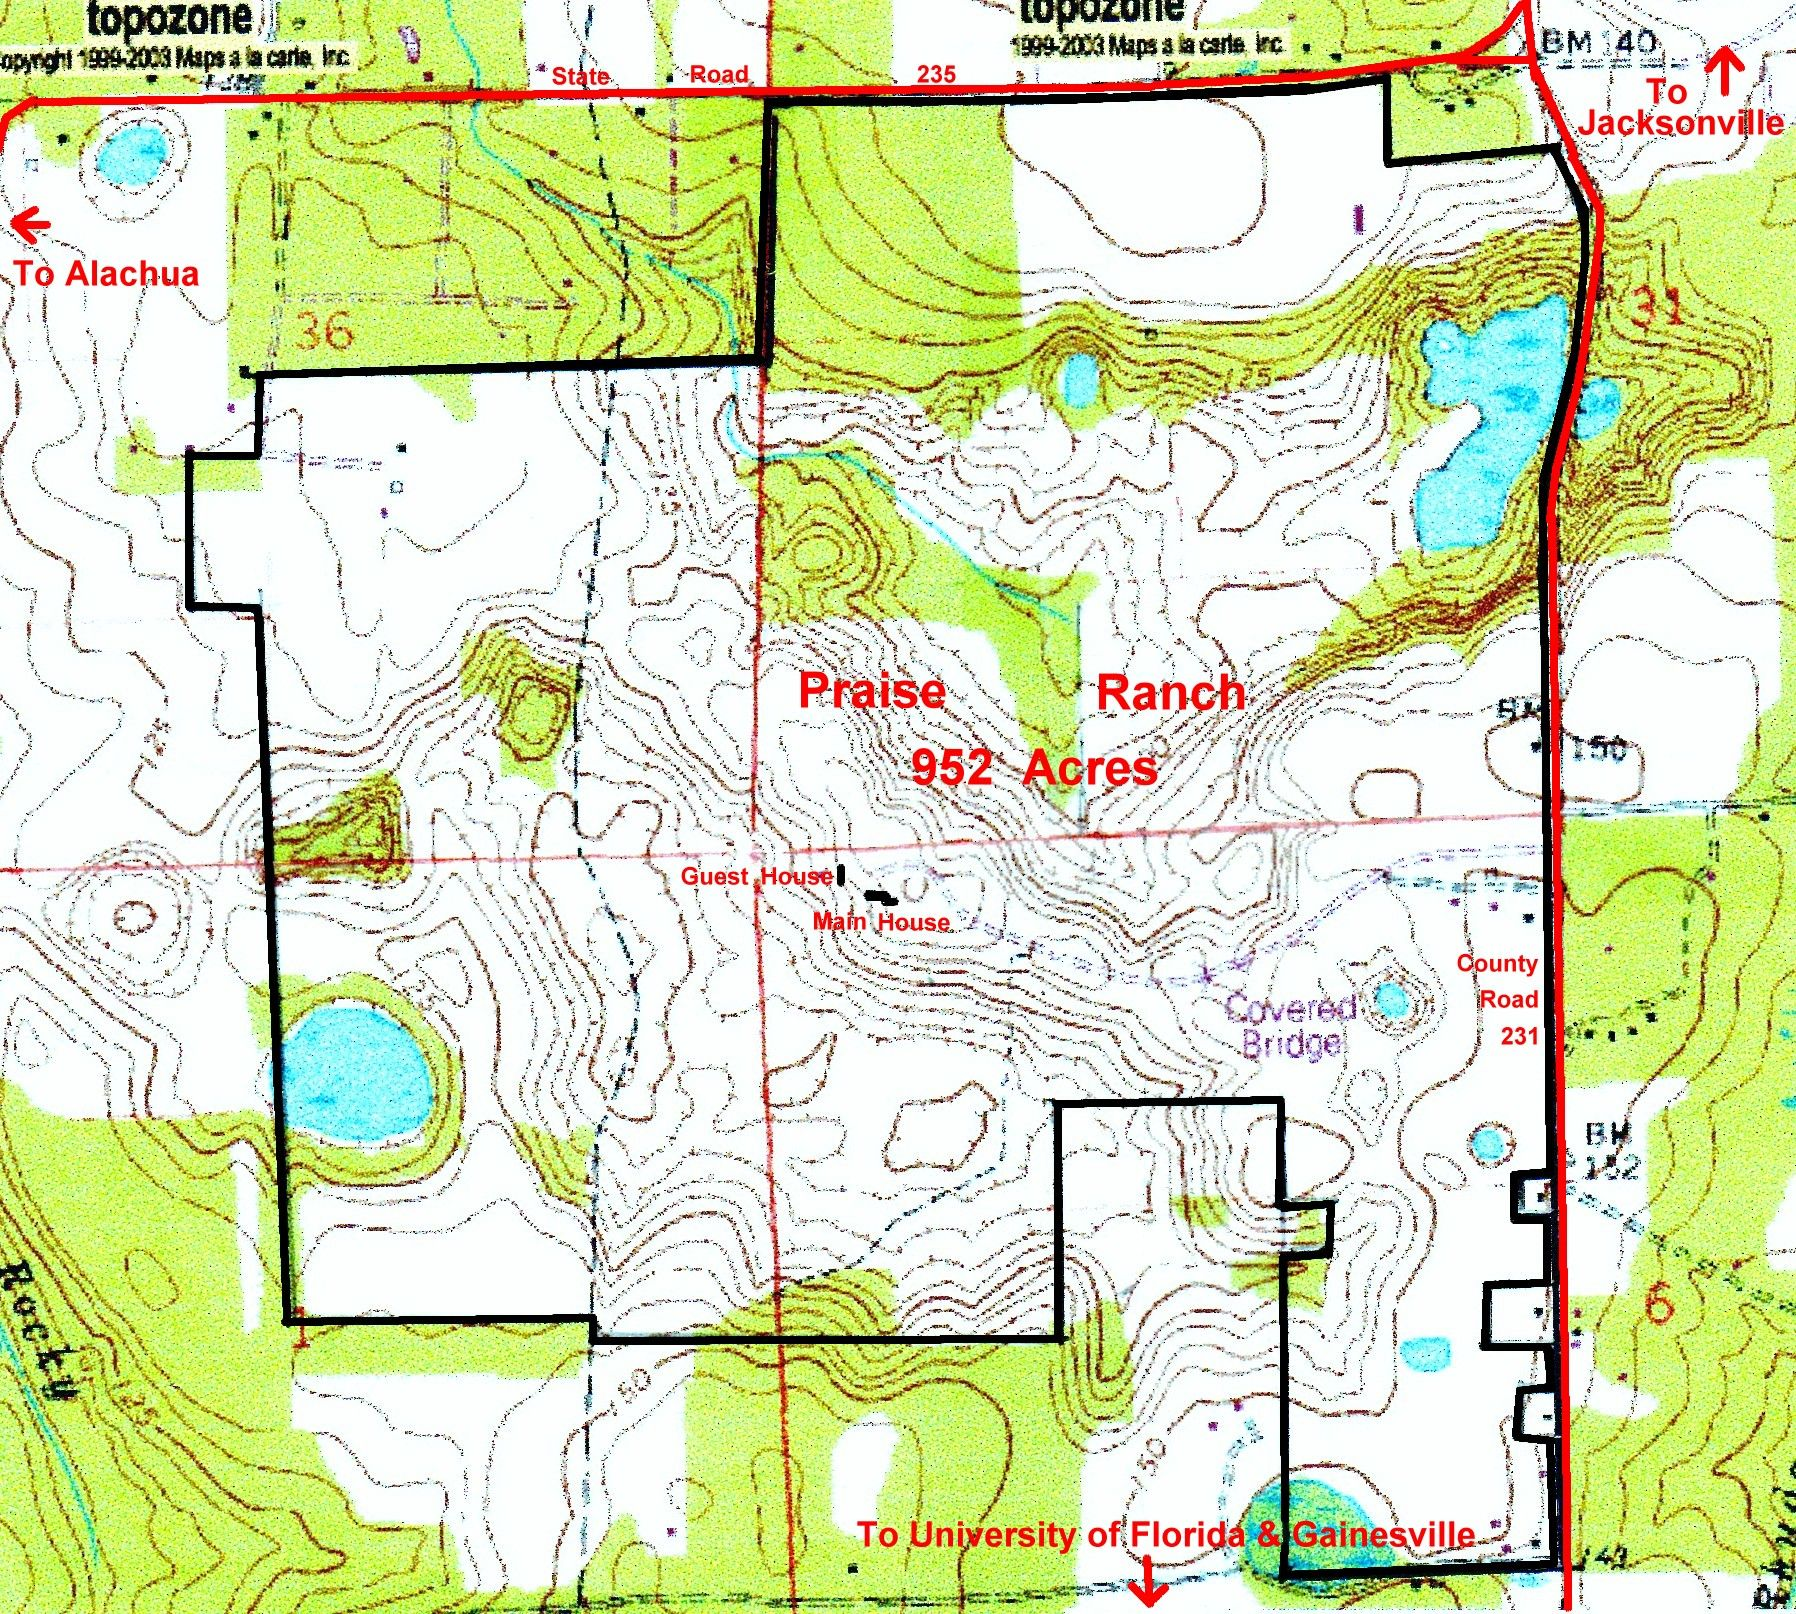 Praise Ranch Topographical Map. 953 acres For Sale near #Gainesville ...